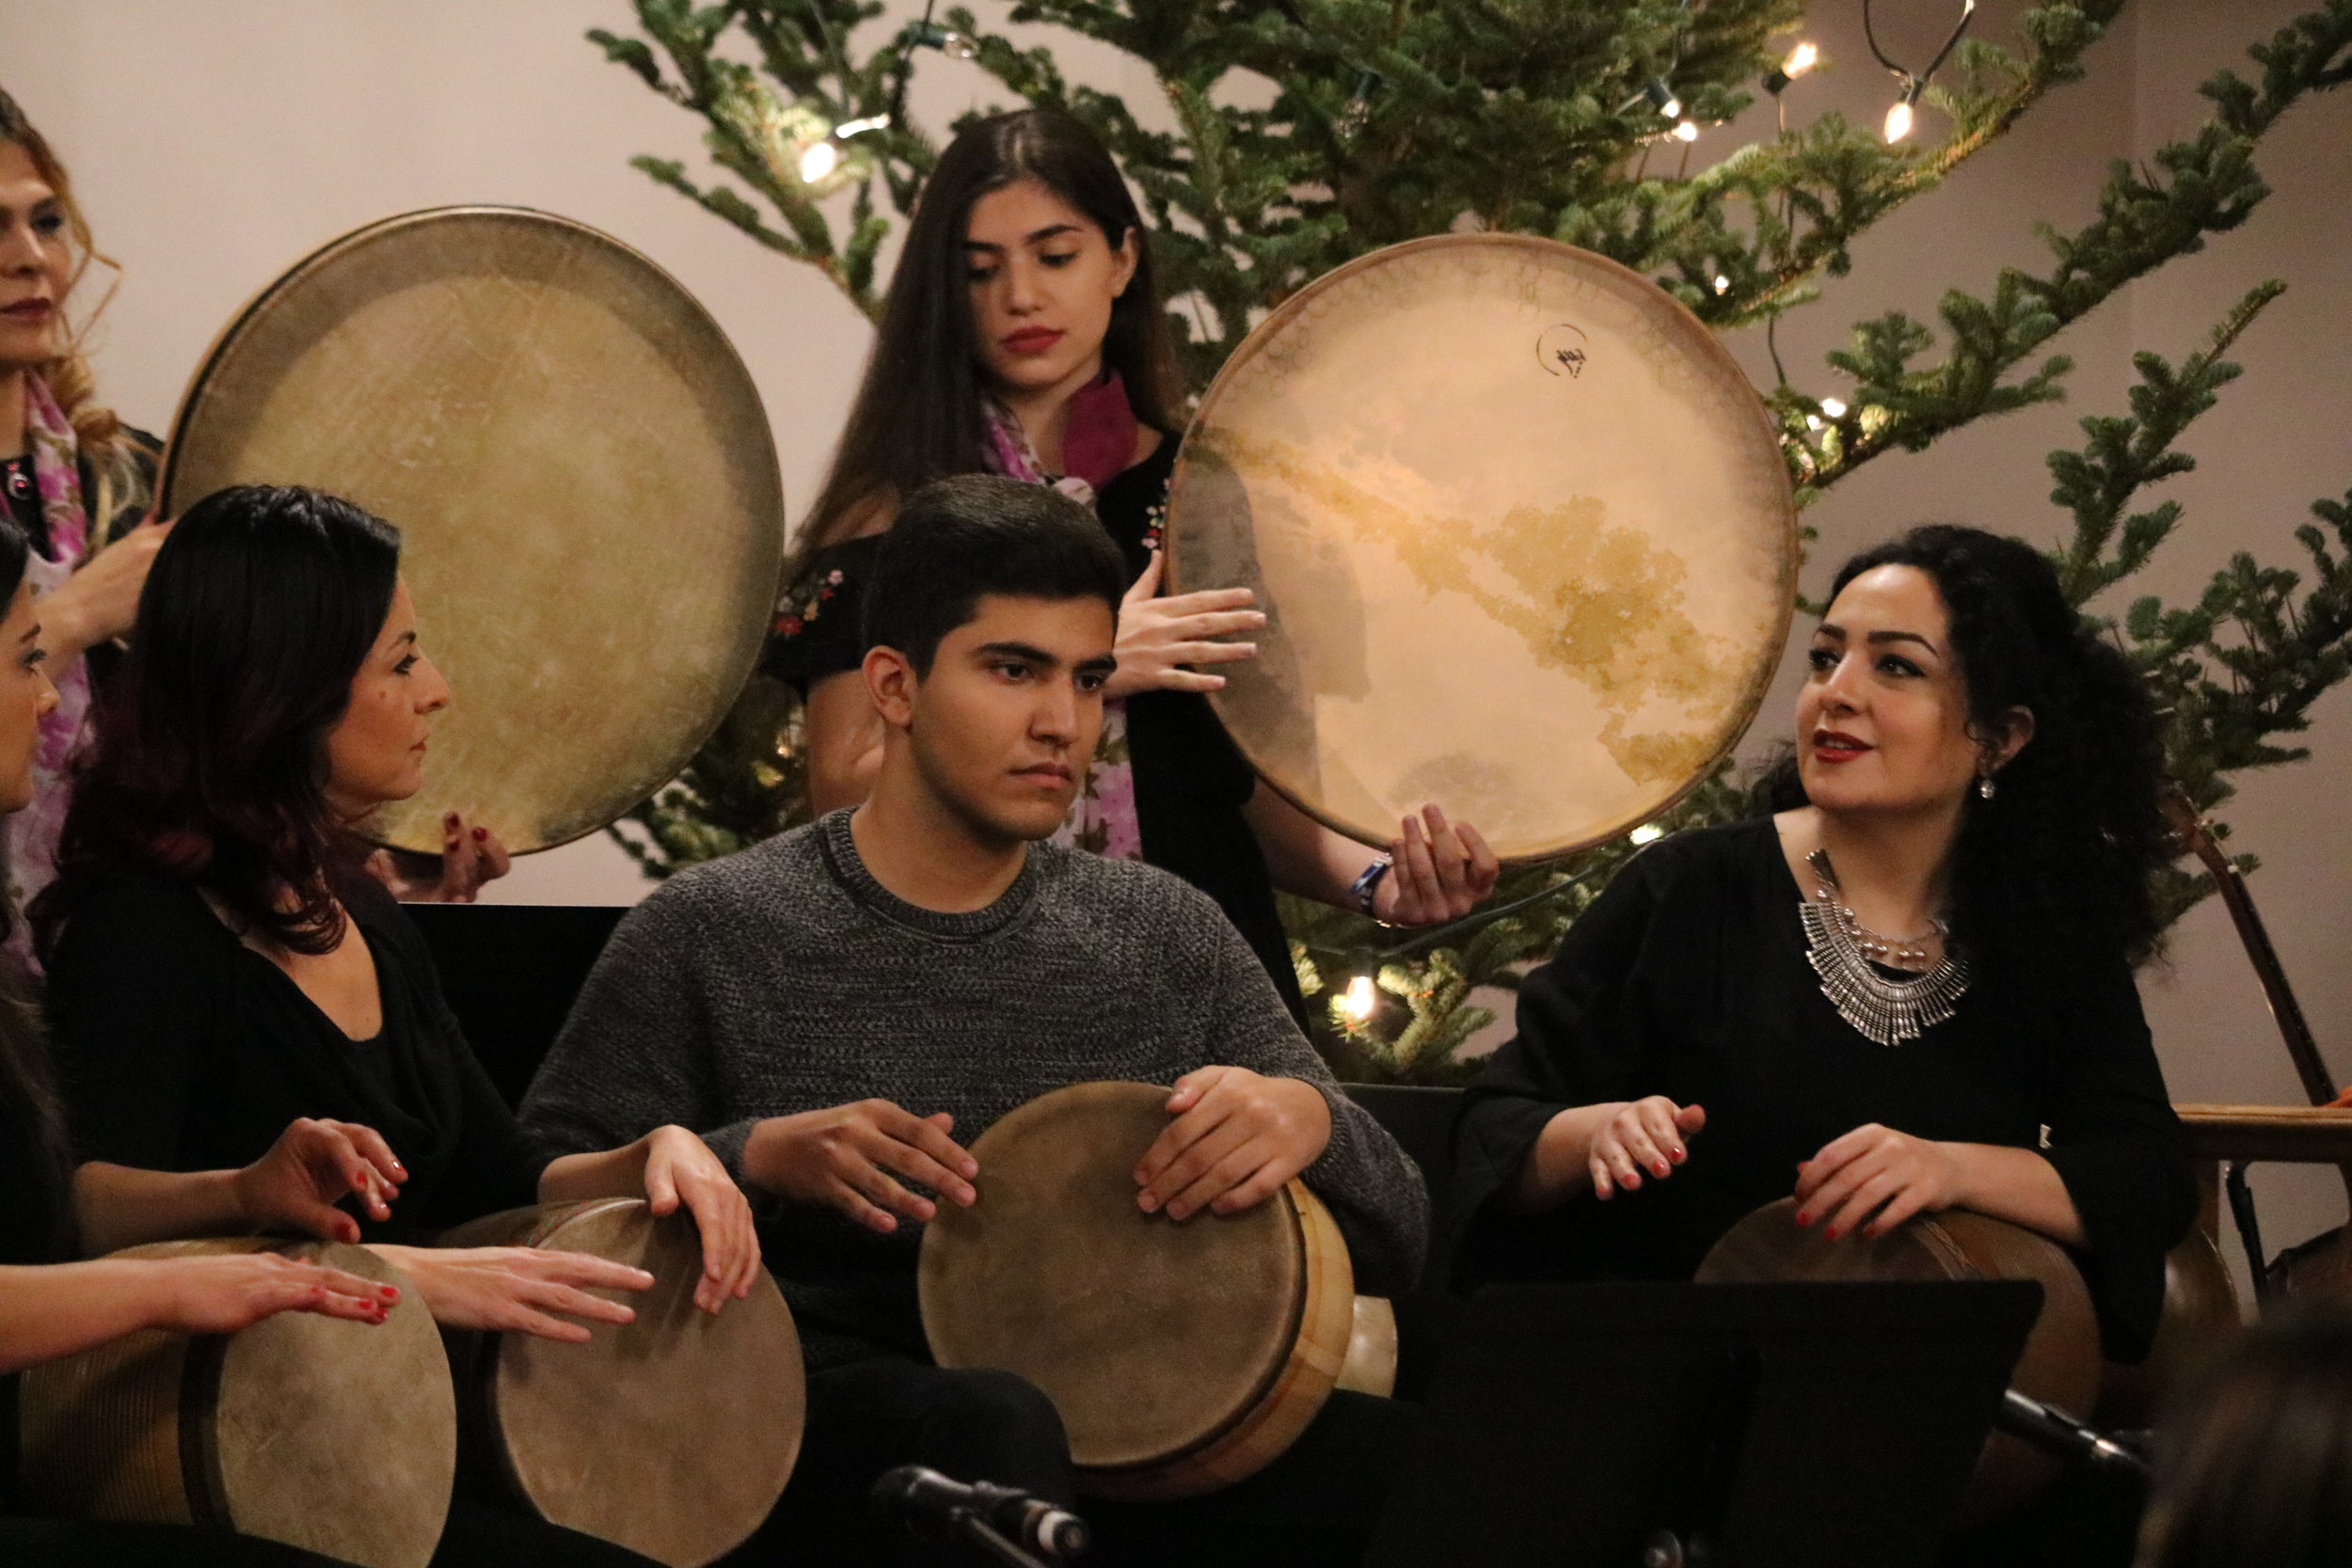 Percussion Ensemble (directed by Naghmeh Farahmand)